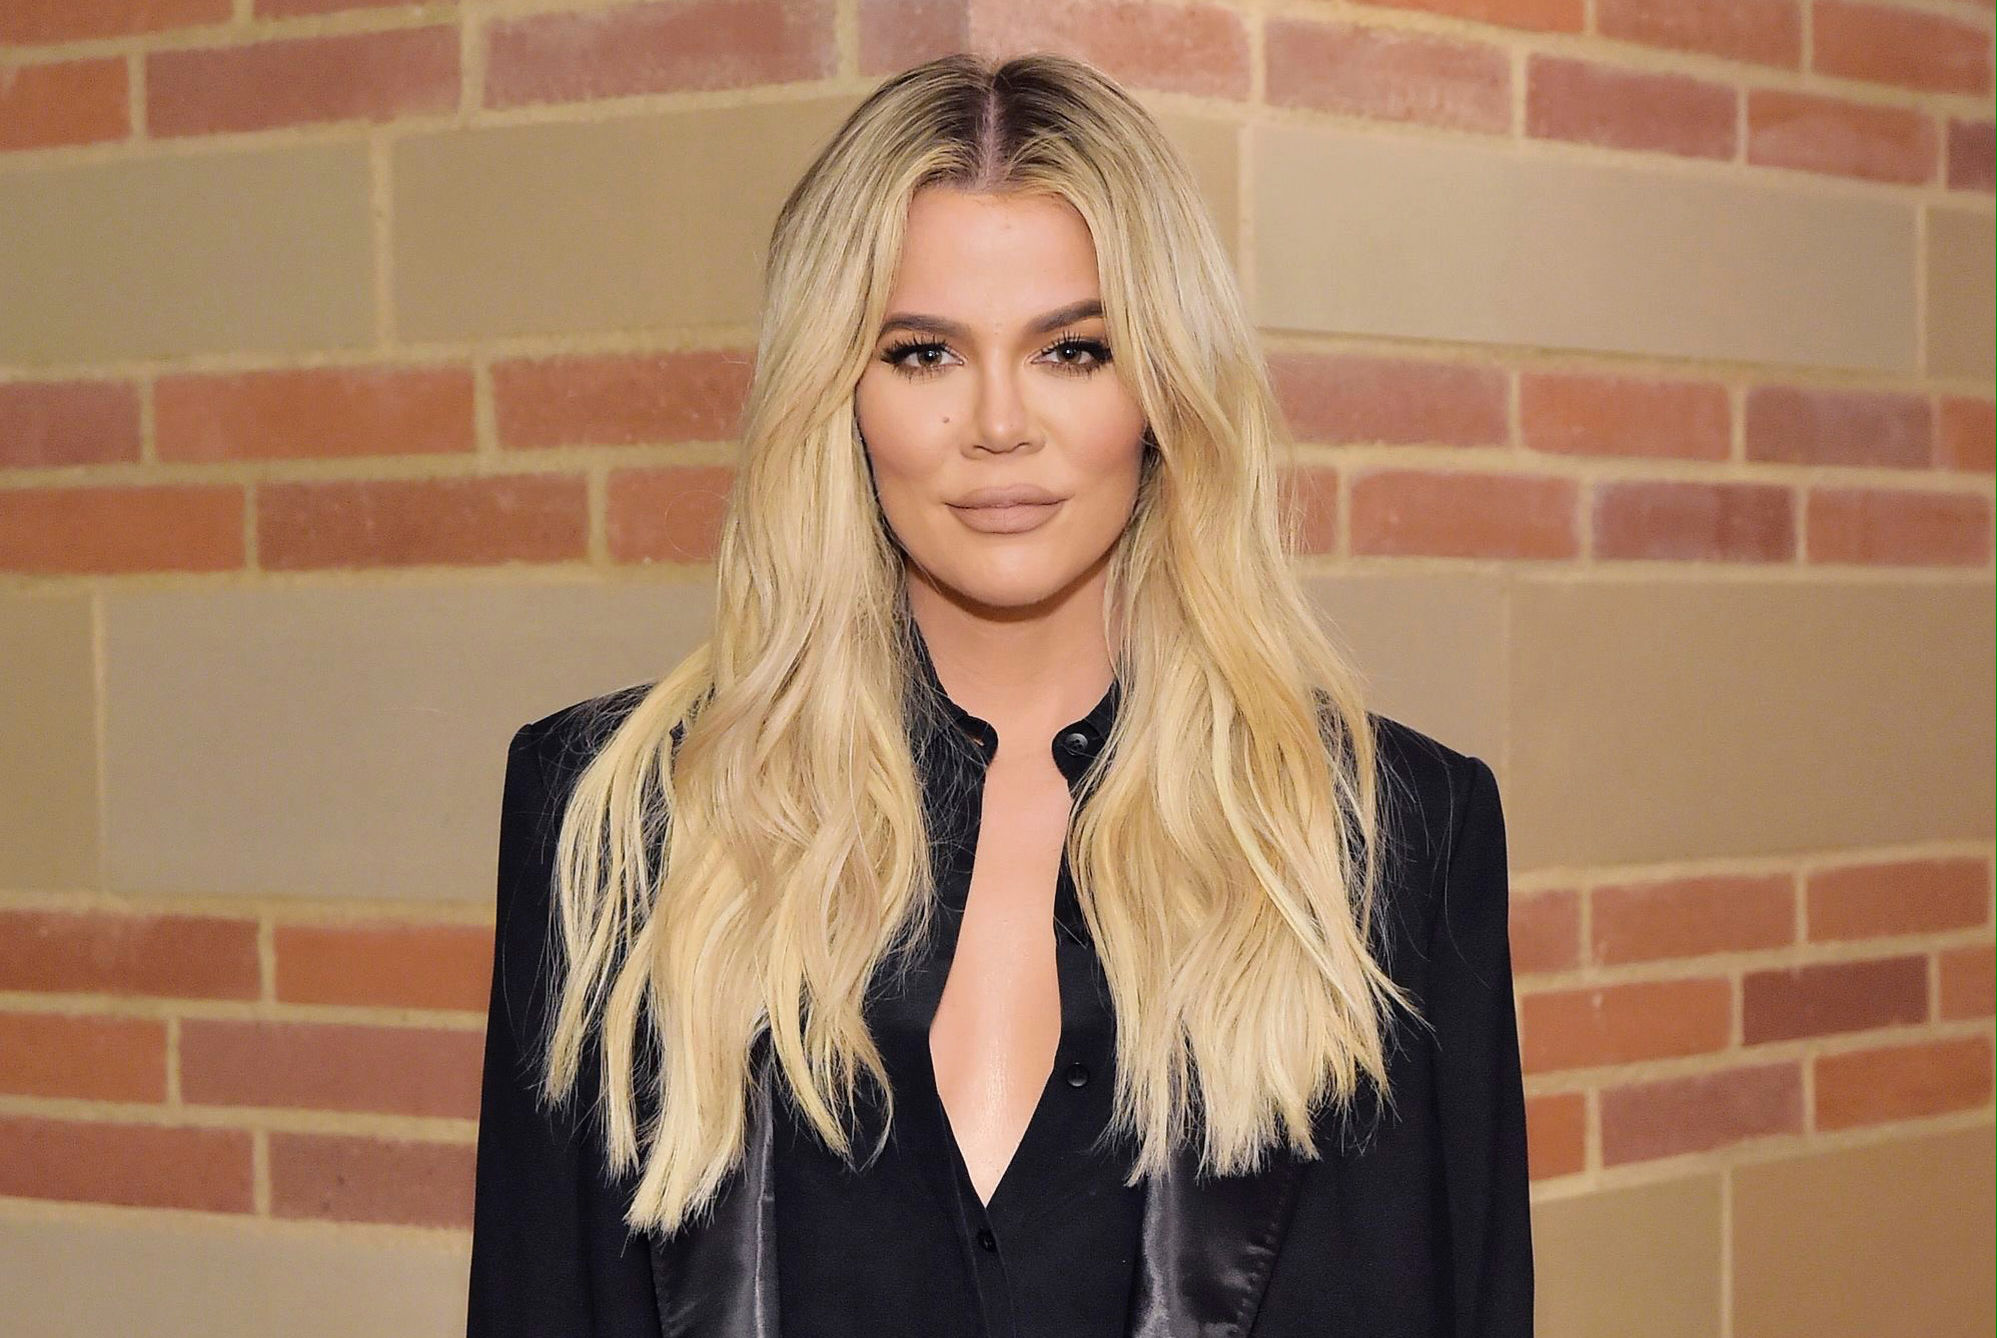 Khloe-Kardashian-says-judgment-over-her-body-is-'almost-unbearable'